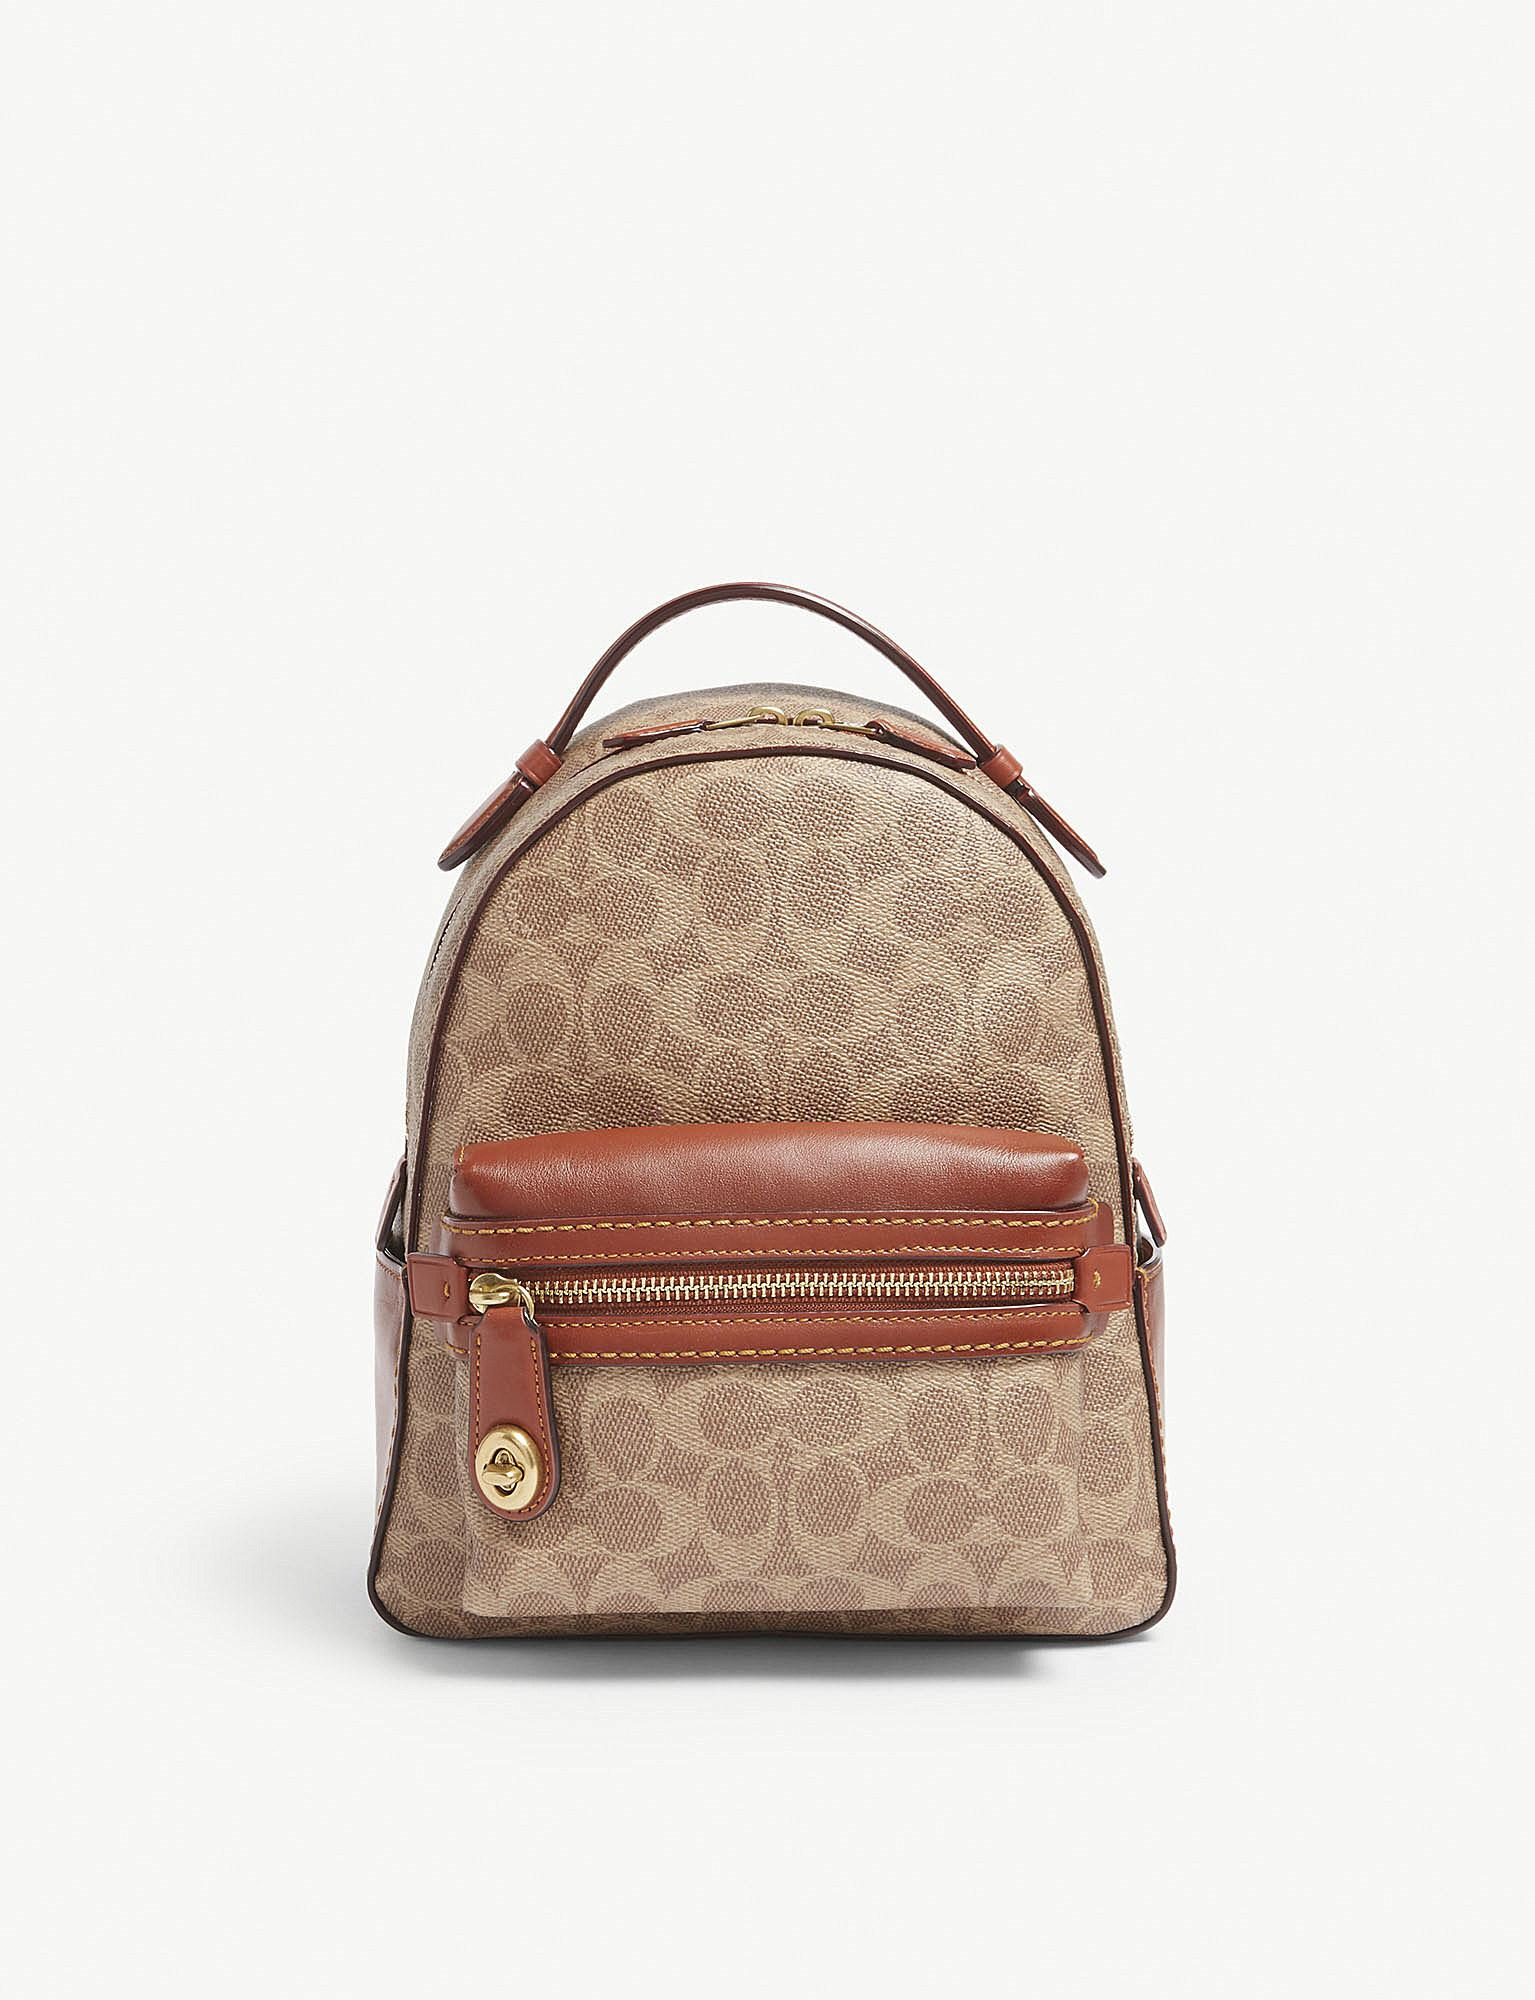 1c22458ae7b5 Lyst - COACH Campus Glovetanned Leather Backpack in Brown - Save 26%